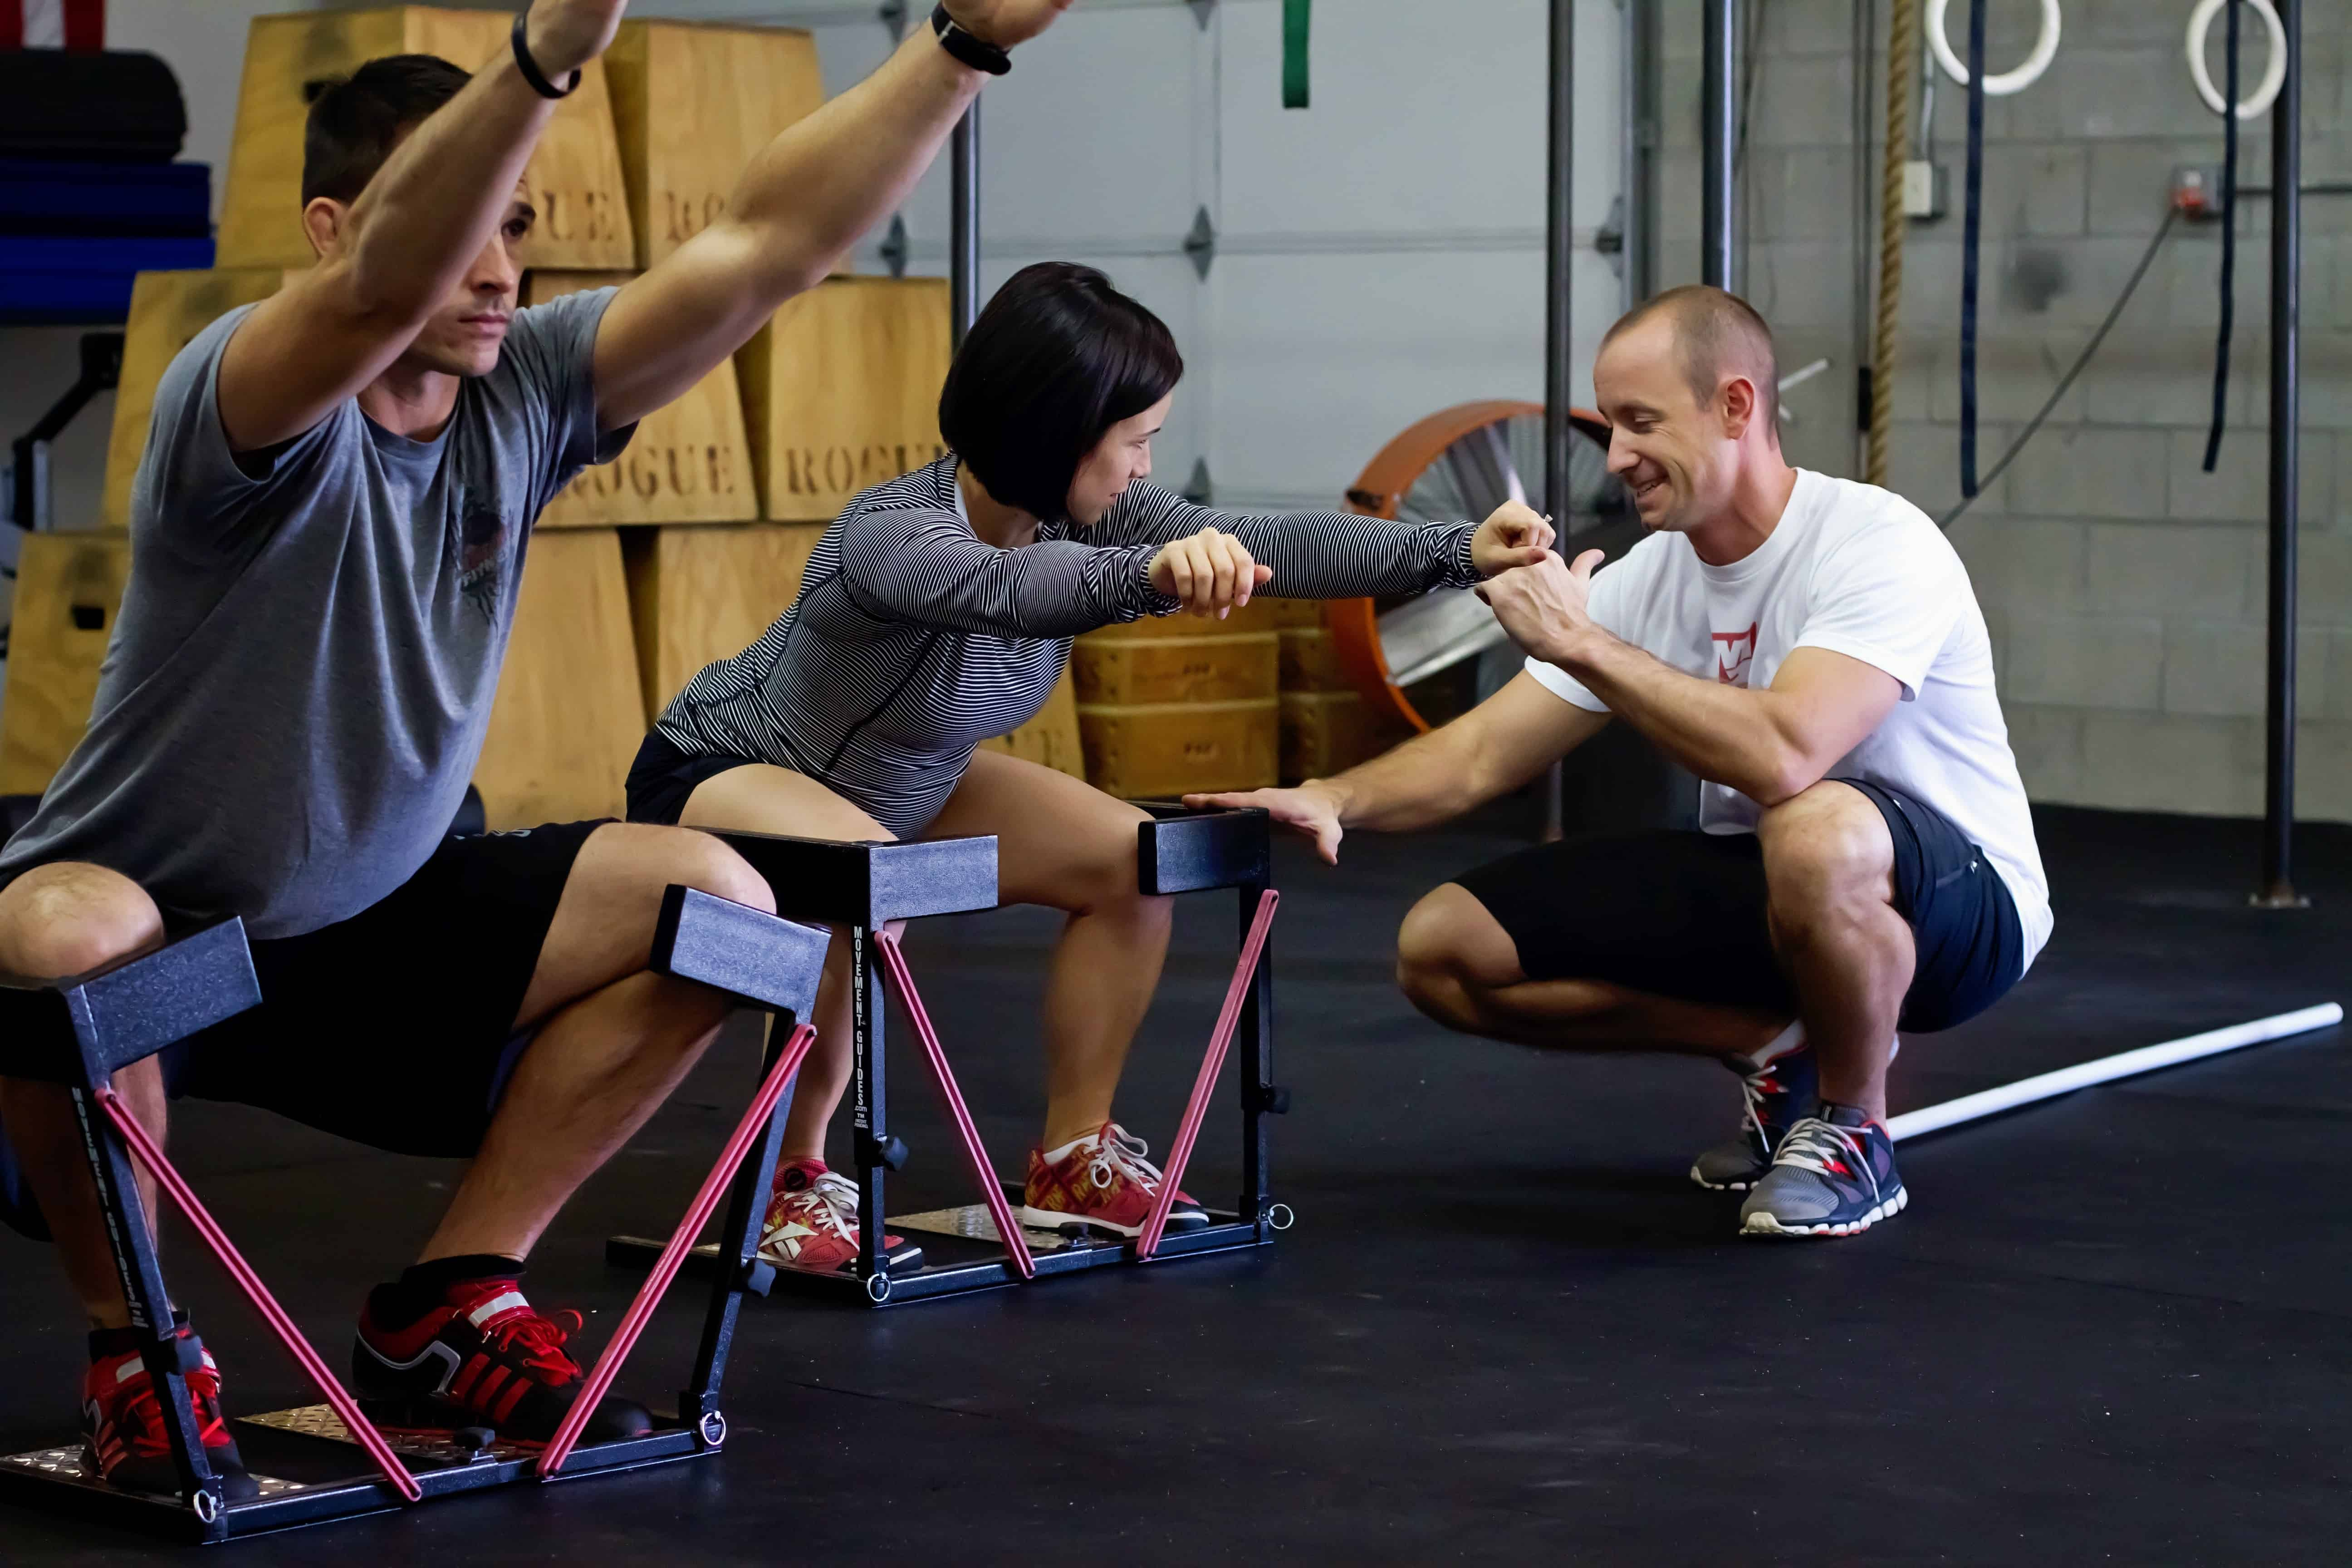 Teaching an athlete how to properly squat in the SquatGuide